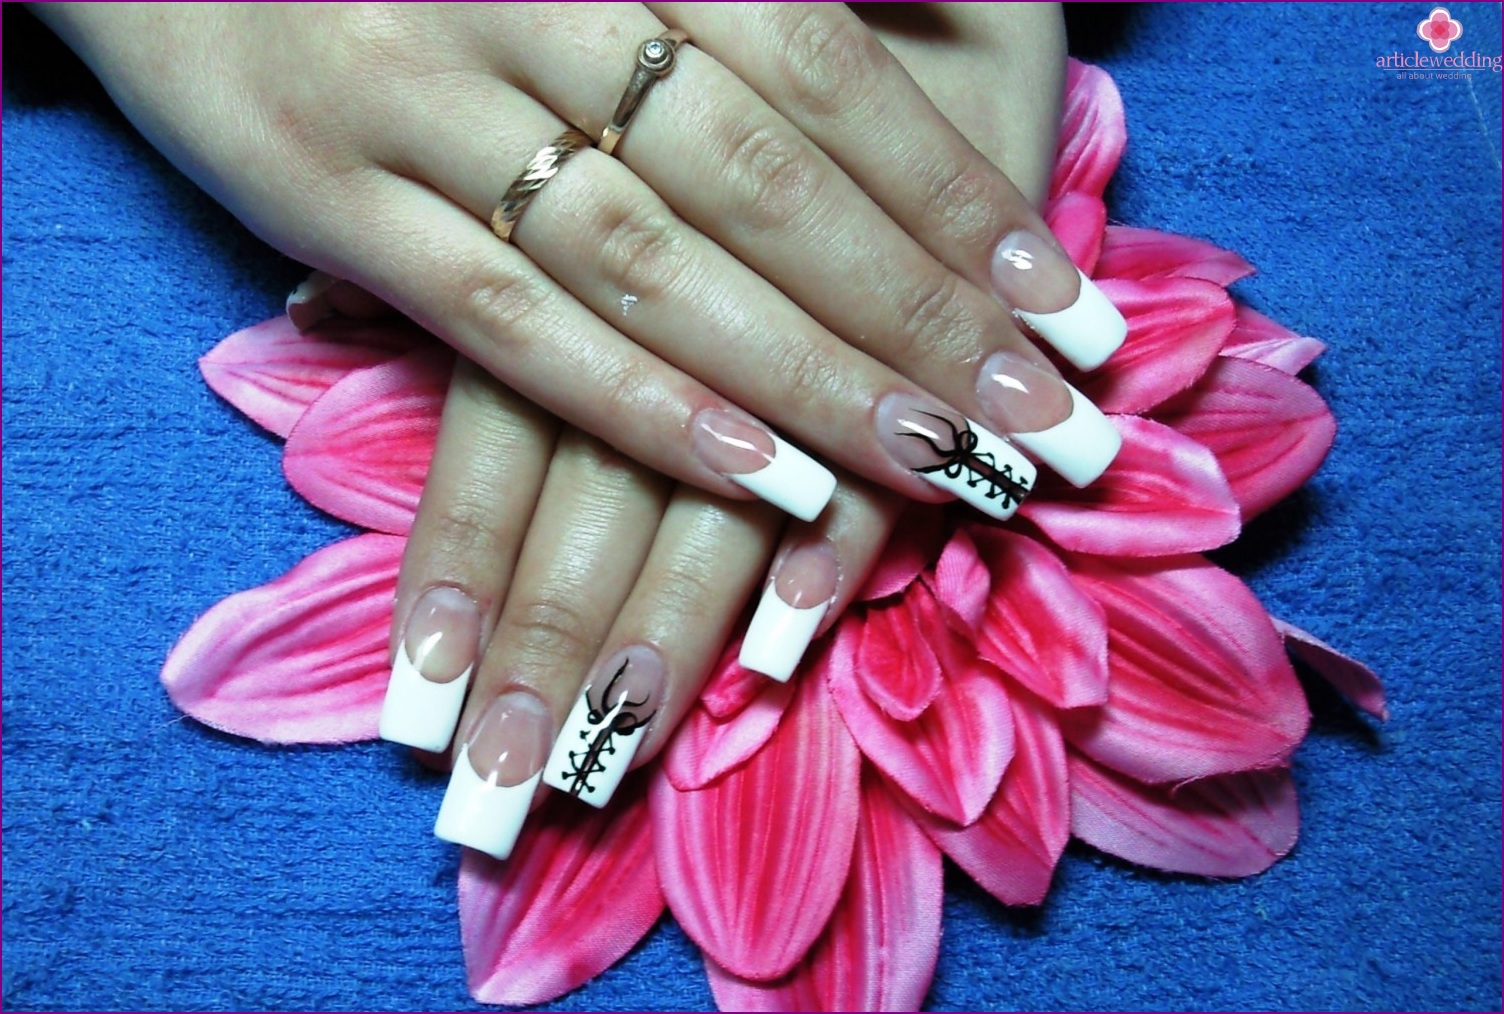 Manicure with lacing